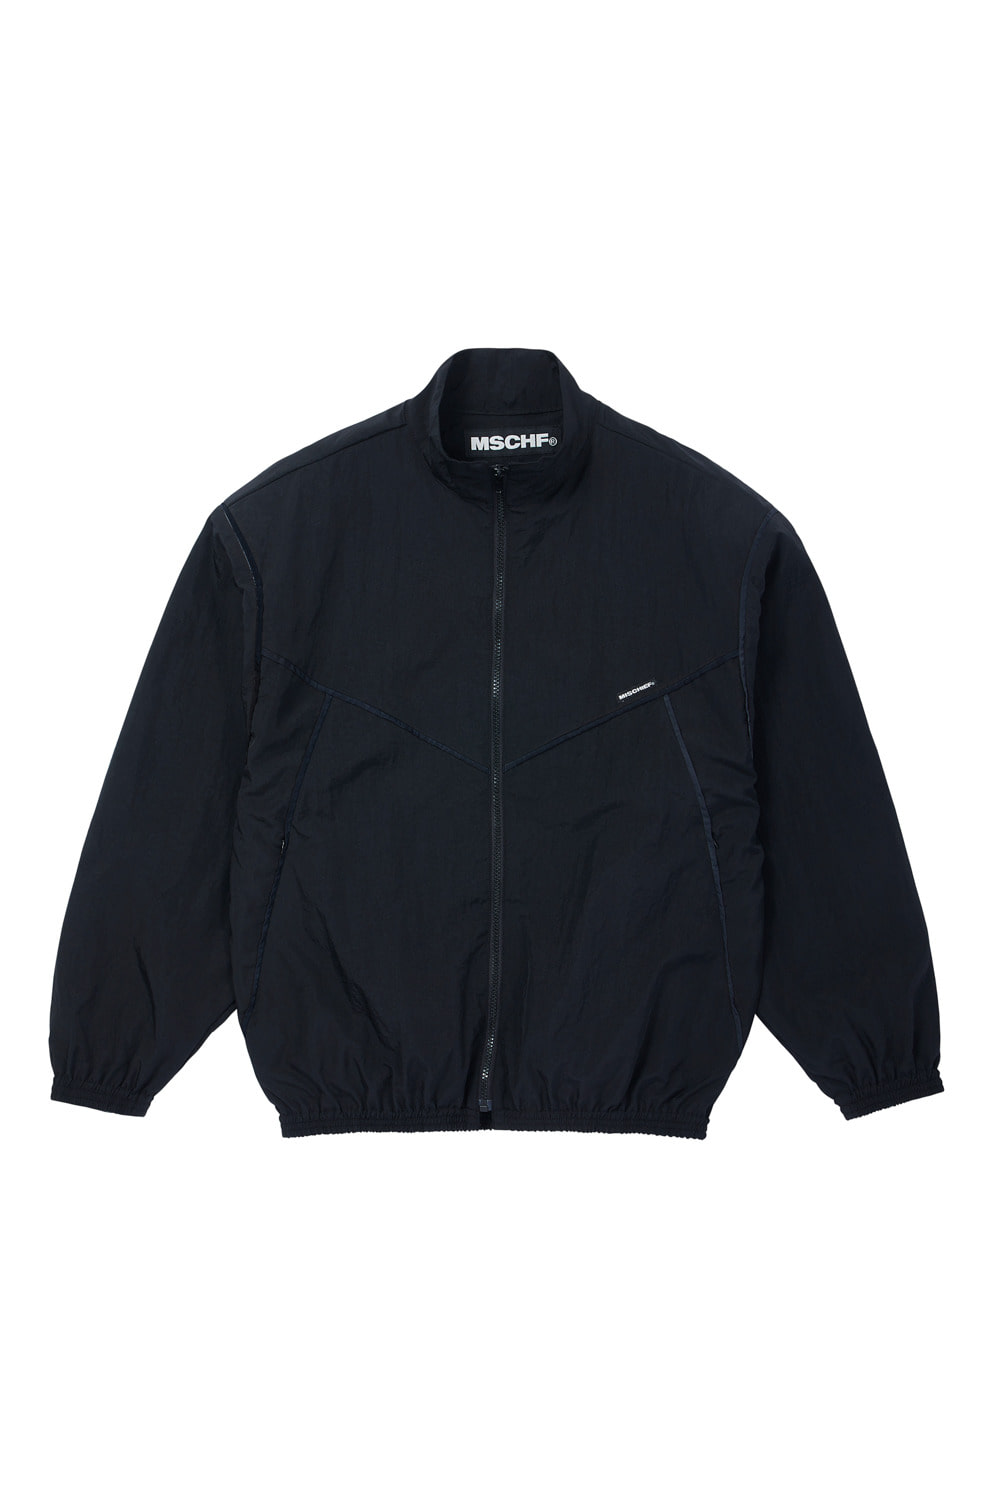 SINCE 2010 WINDBREAKER_black